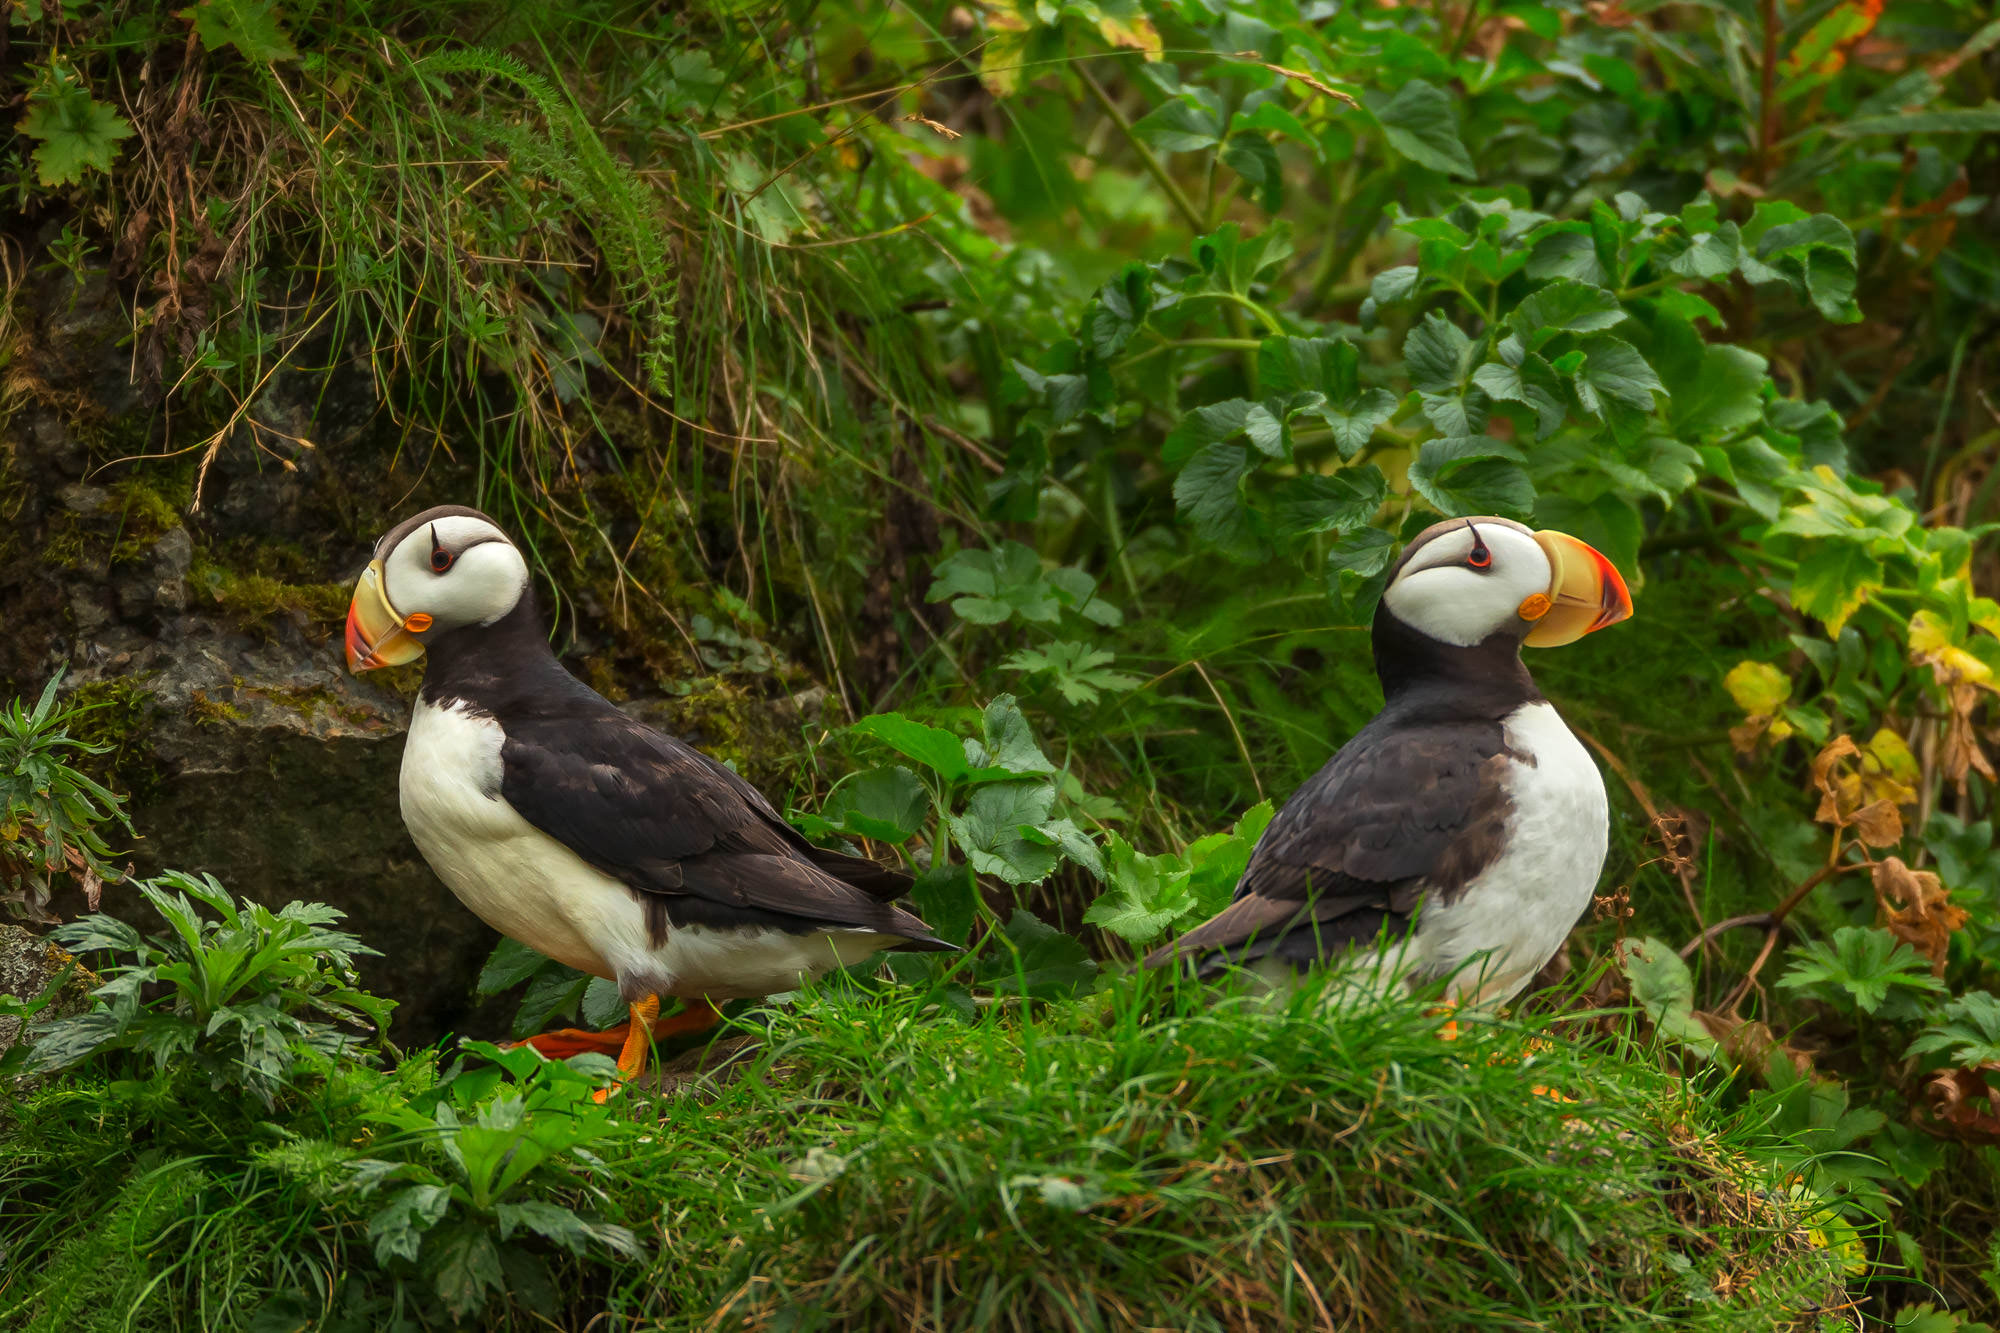 Puffin, Atlantic Puffin, Alaska, photo